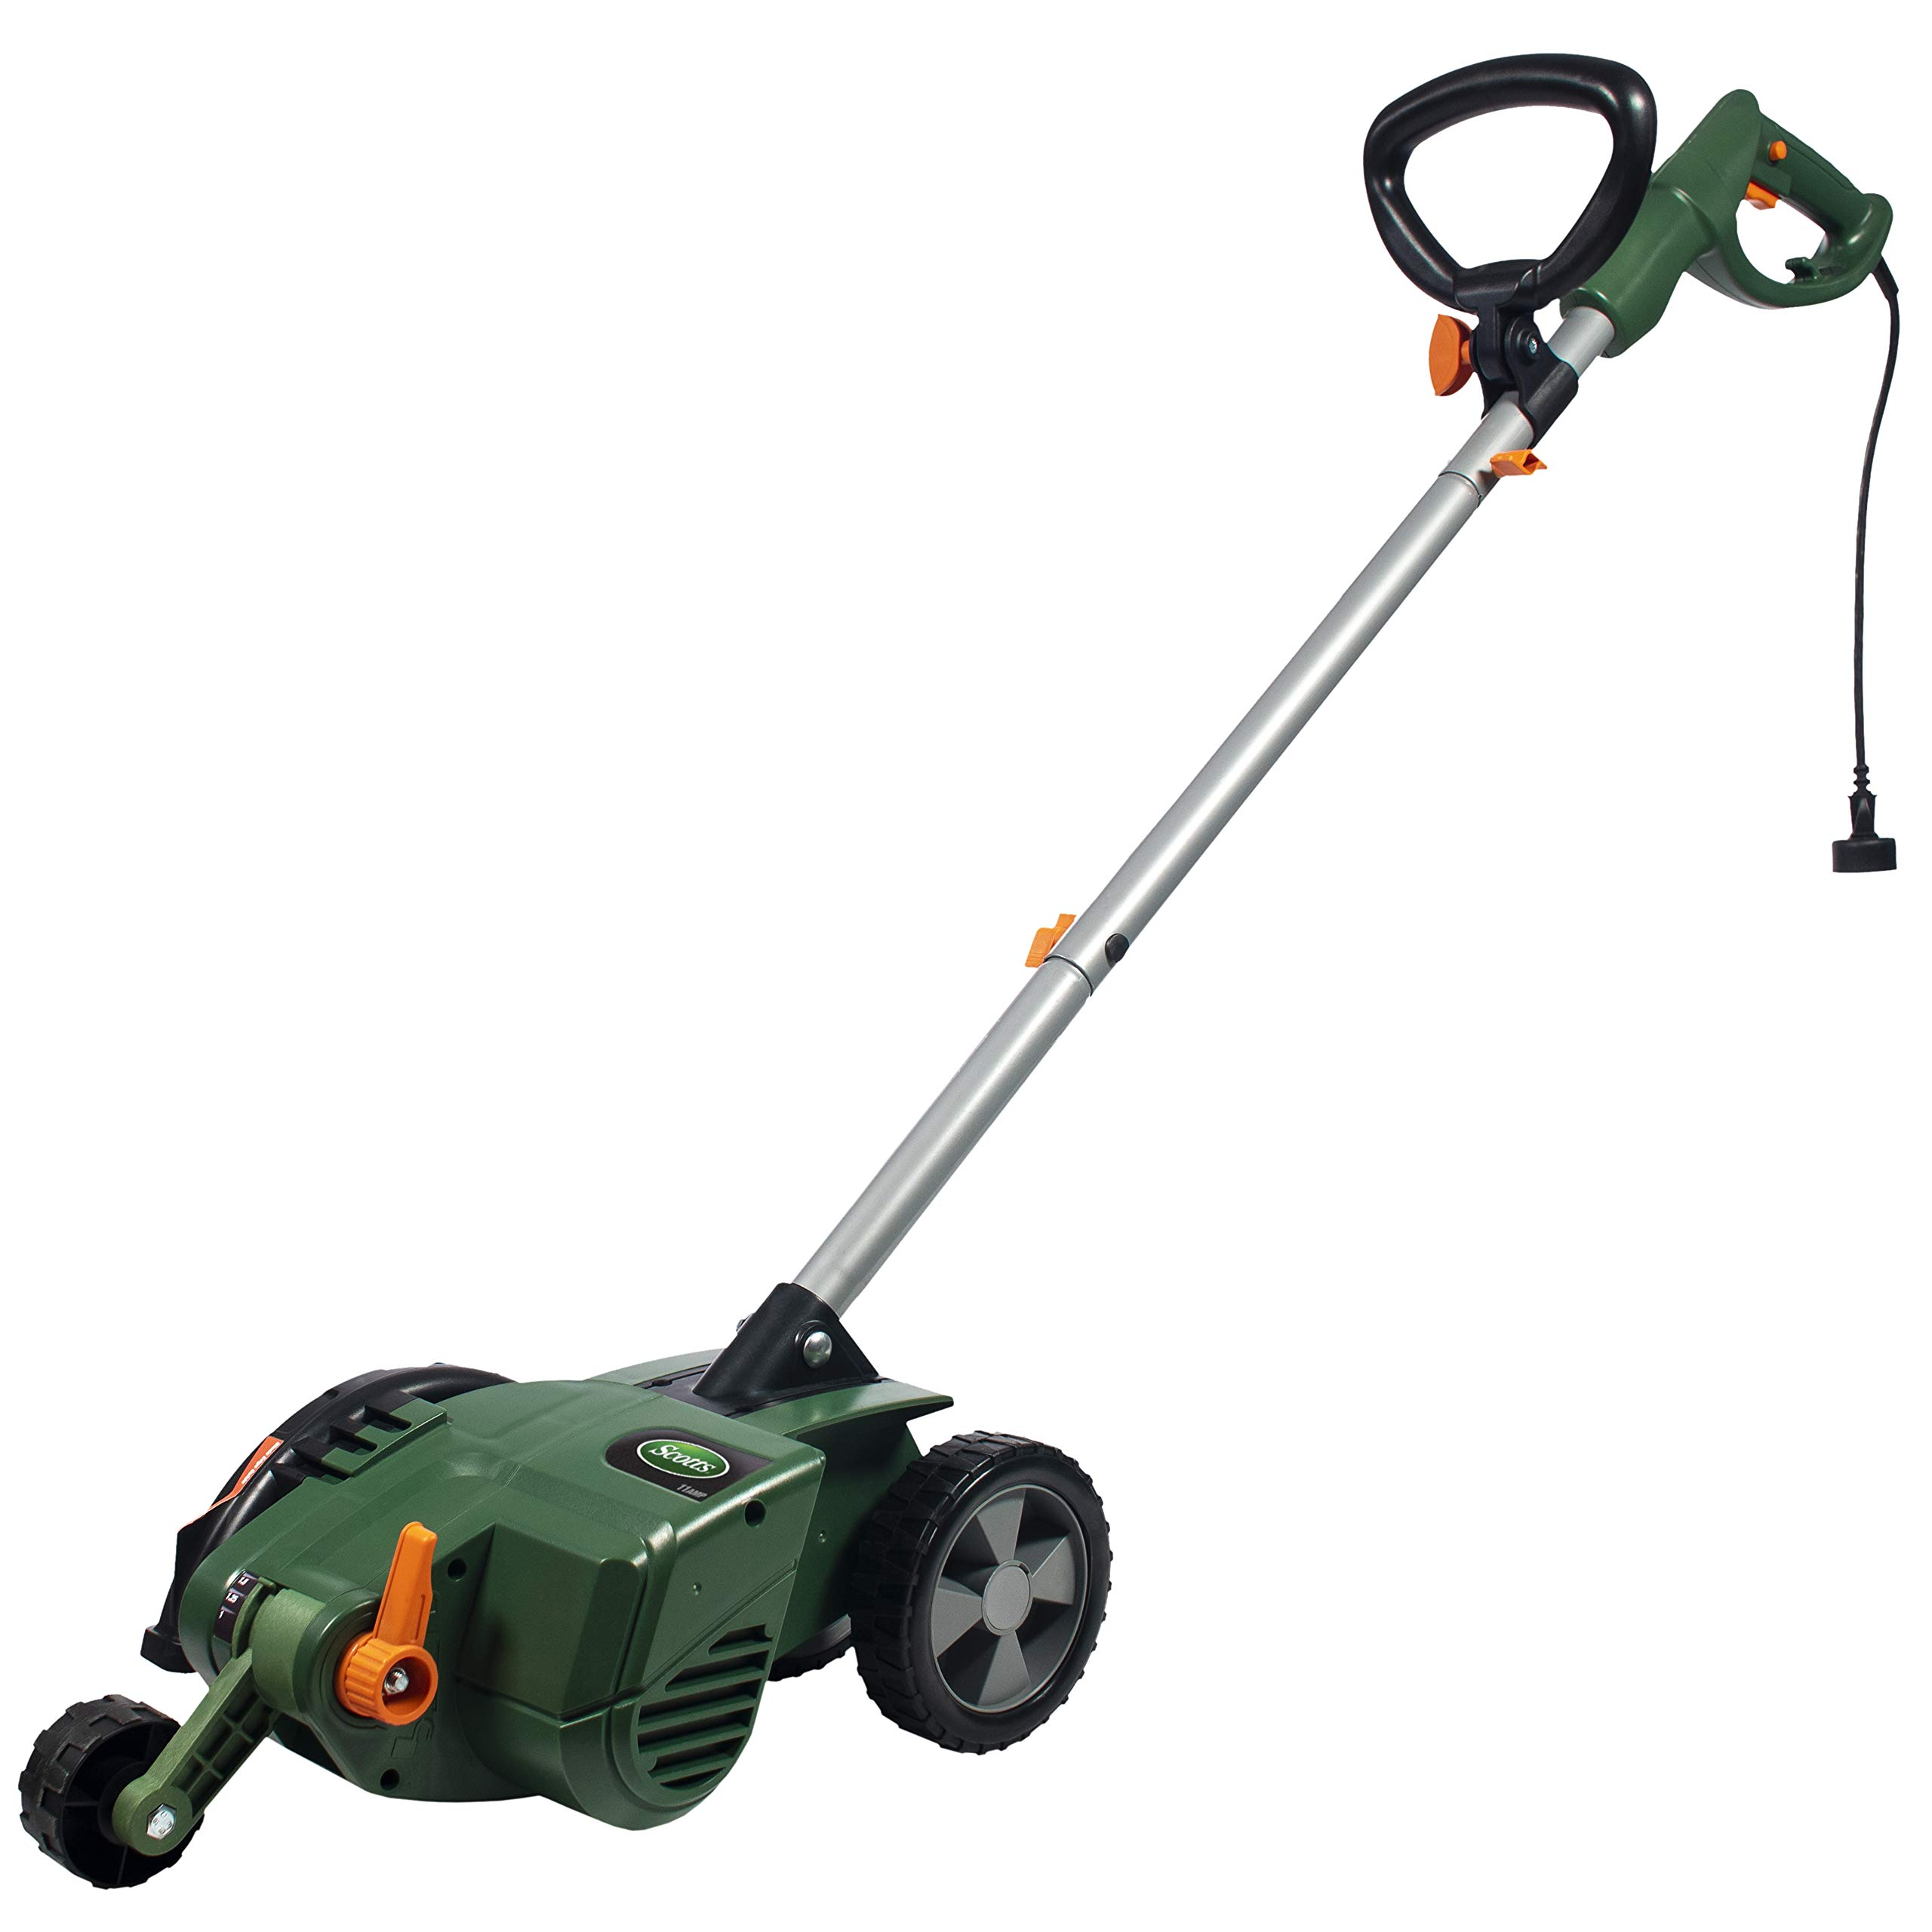 Scotts Outdoor Power Tools ED70012S 11-Amp 3-Position Corded Electric Lawn Edger, Green by Scotts Outdoor Power Tools